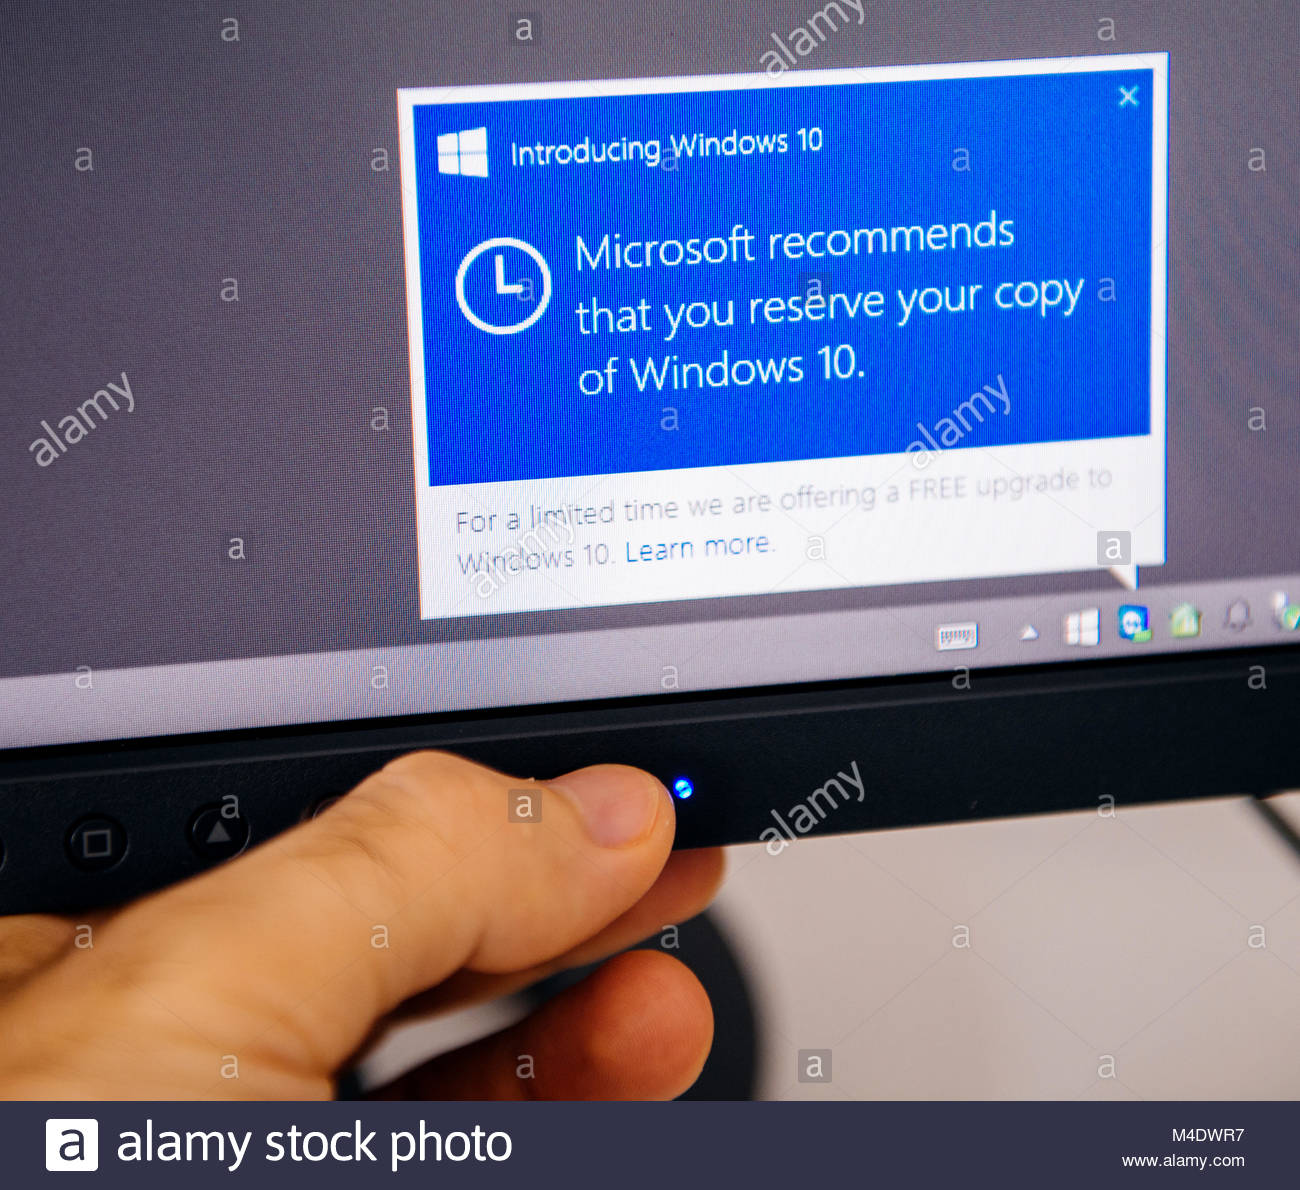 Introducing Windows 10 message on computer display man touching